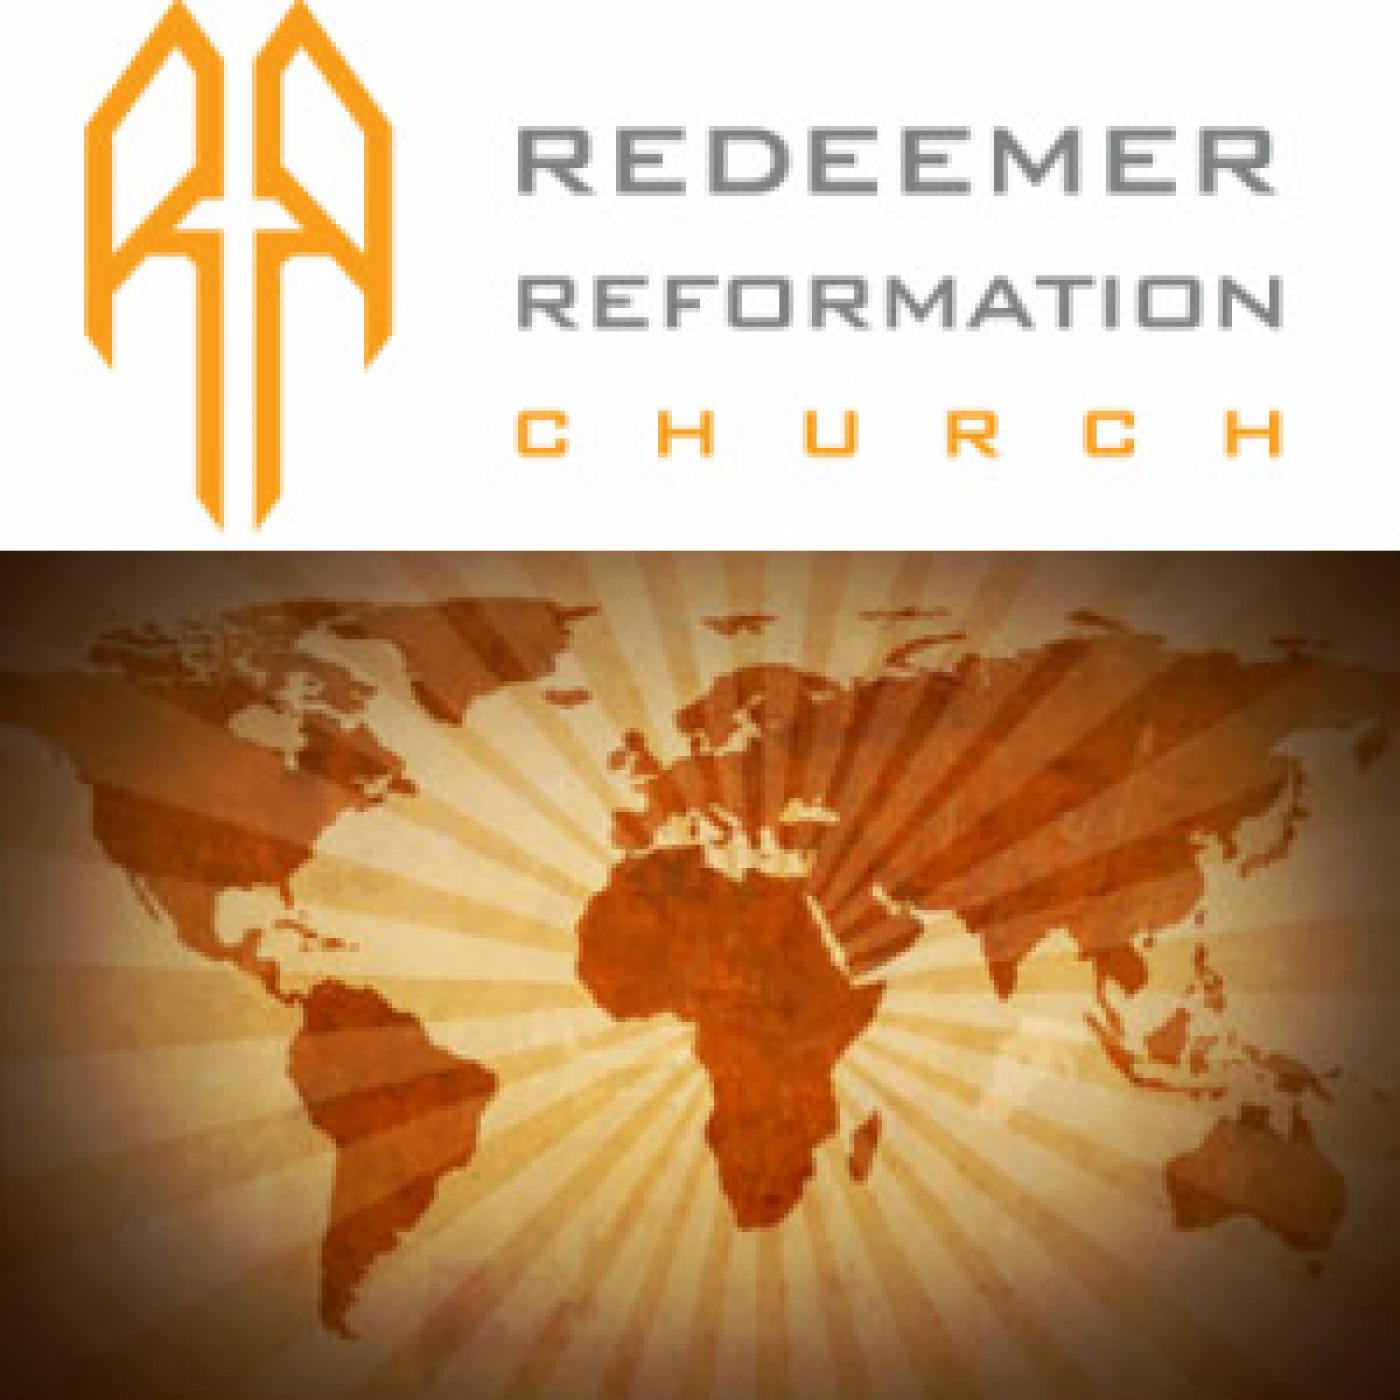 Redeemer Reformation Church Korean Sermons